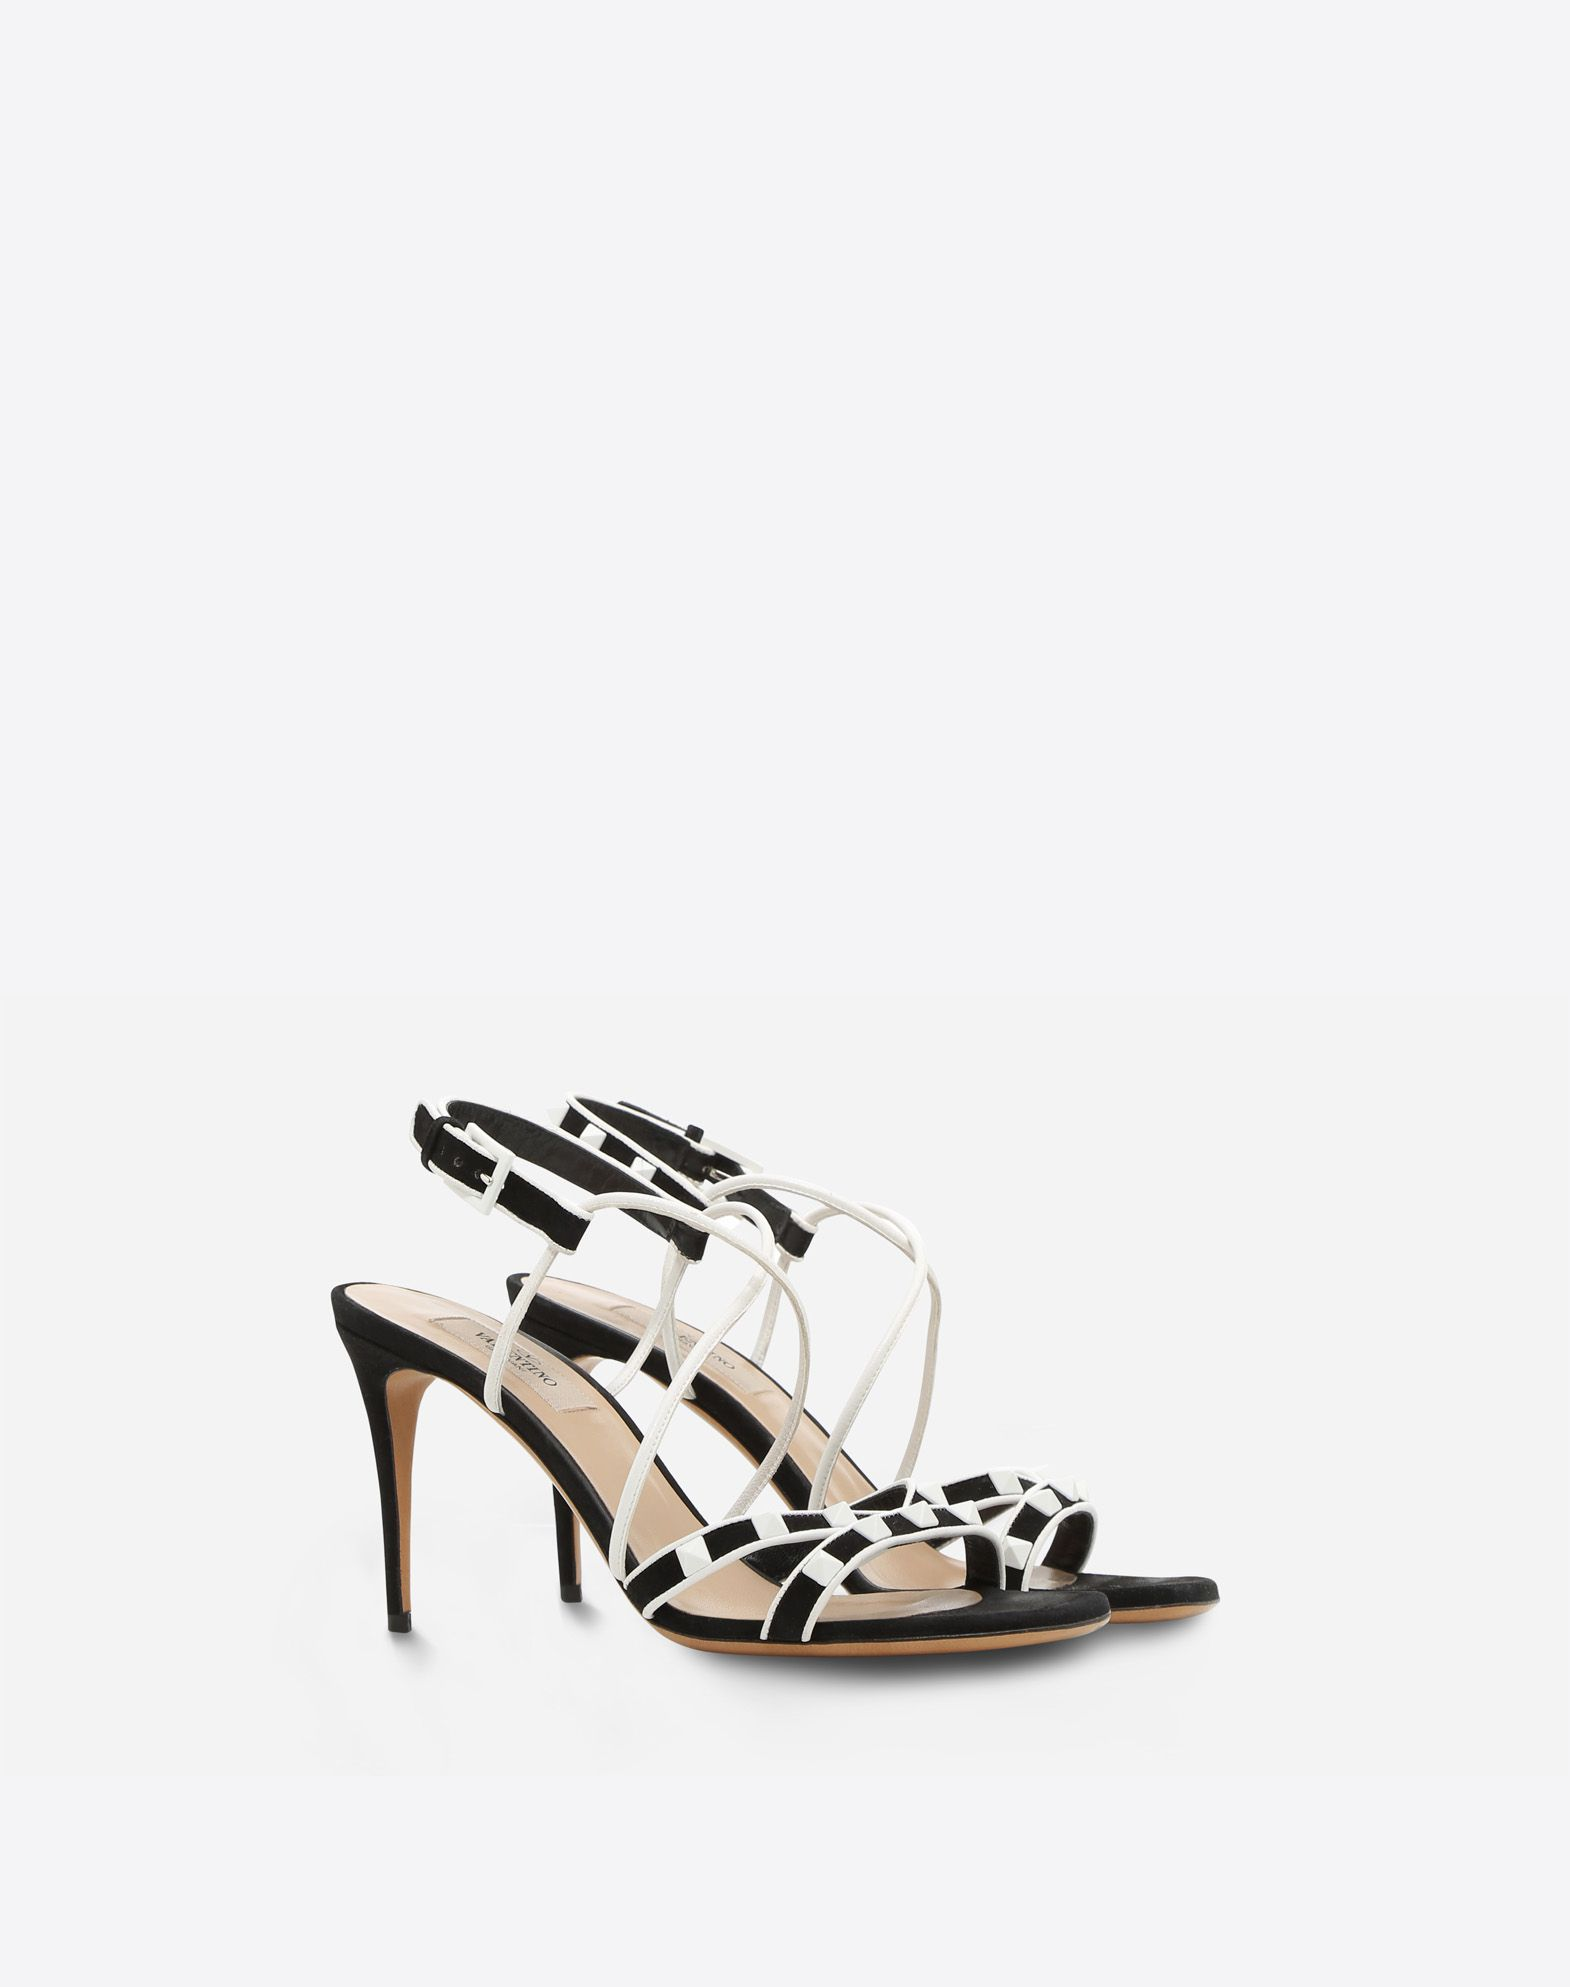 Valentino Garavani Rockstud suede and leather sandals Ei2UaiC05